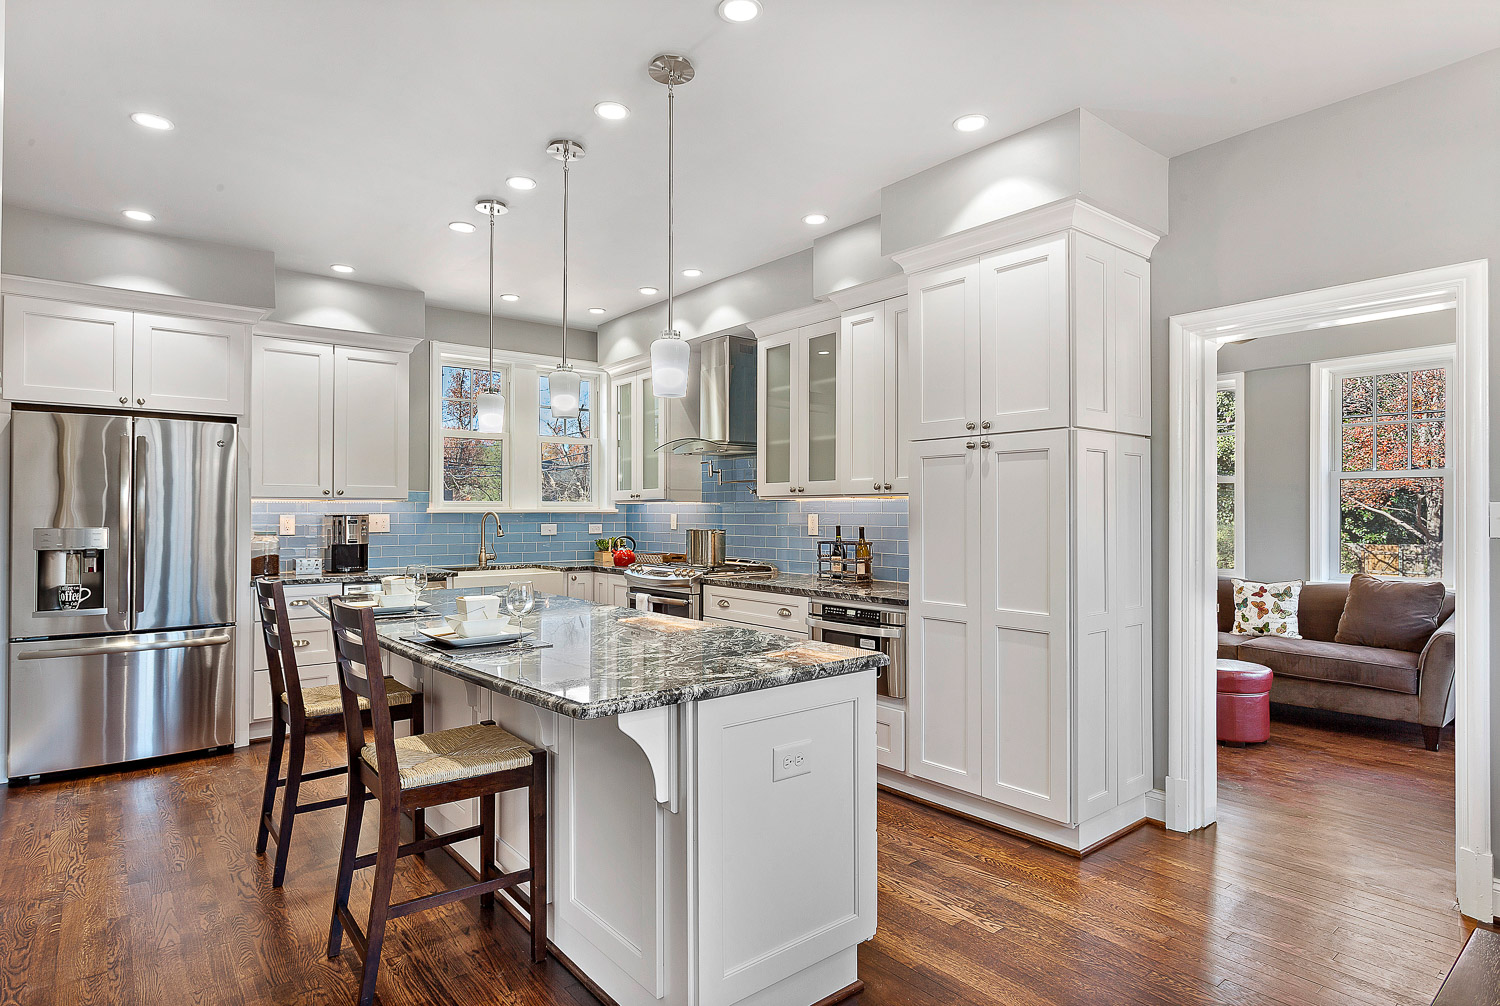 Custom White Kitchen with Blue Subway Tile and Granite and Hardwood Floors